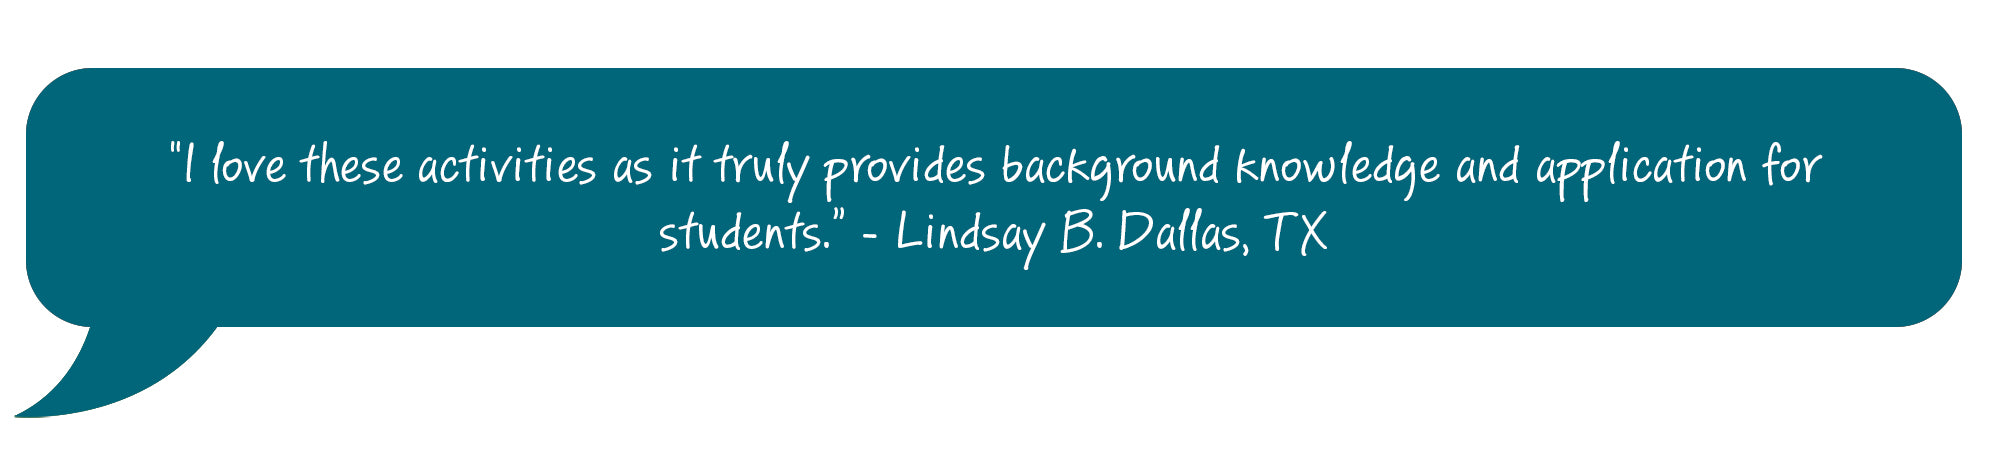 I love these activities as it truly provides background knowledge and application for students. Lindsay B. Dallas, TX